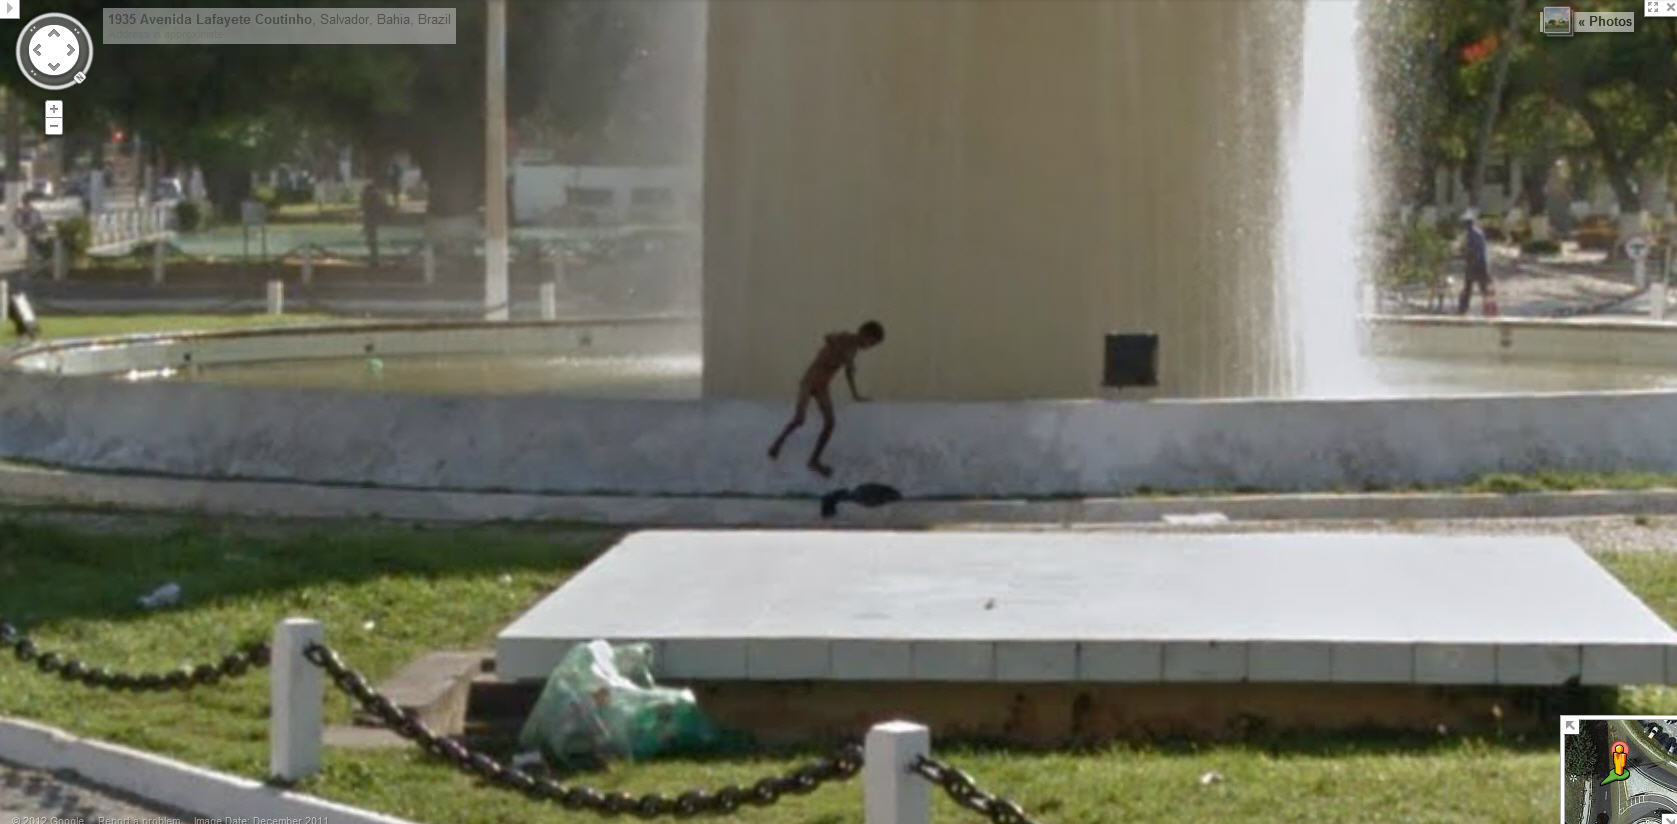 it-appears-there-is-an-alien-taking-a-bath-in-this-brazilian-fountain